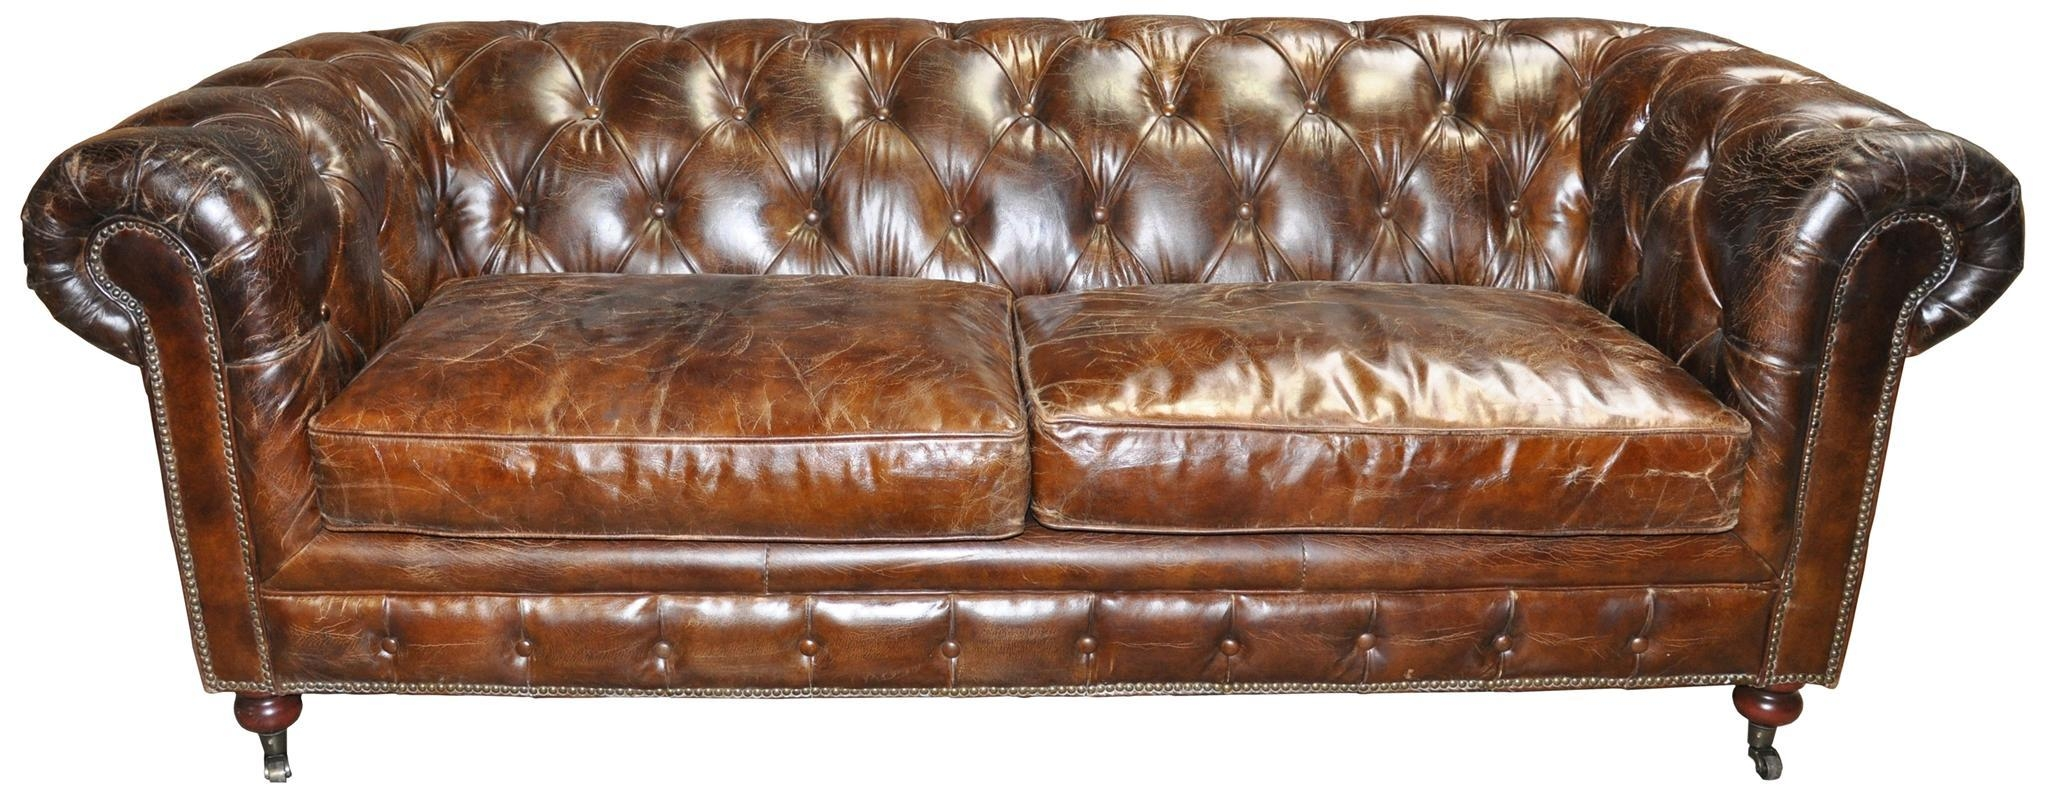 Tufted Sofas Toronto | Tehranmix Decoration Pertaining To Brown Tufted Sofas (View 16 of 20)